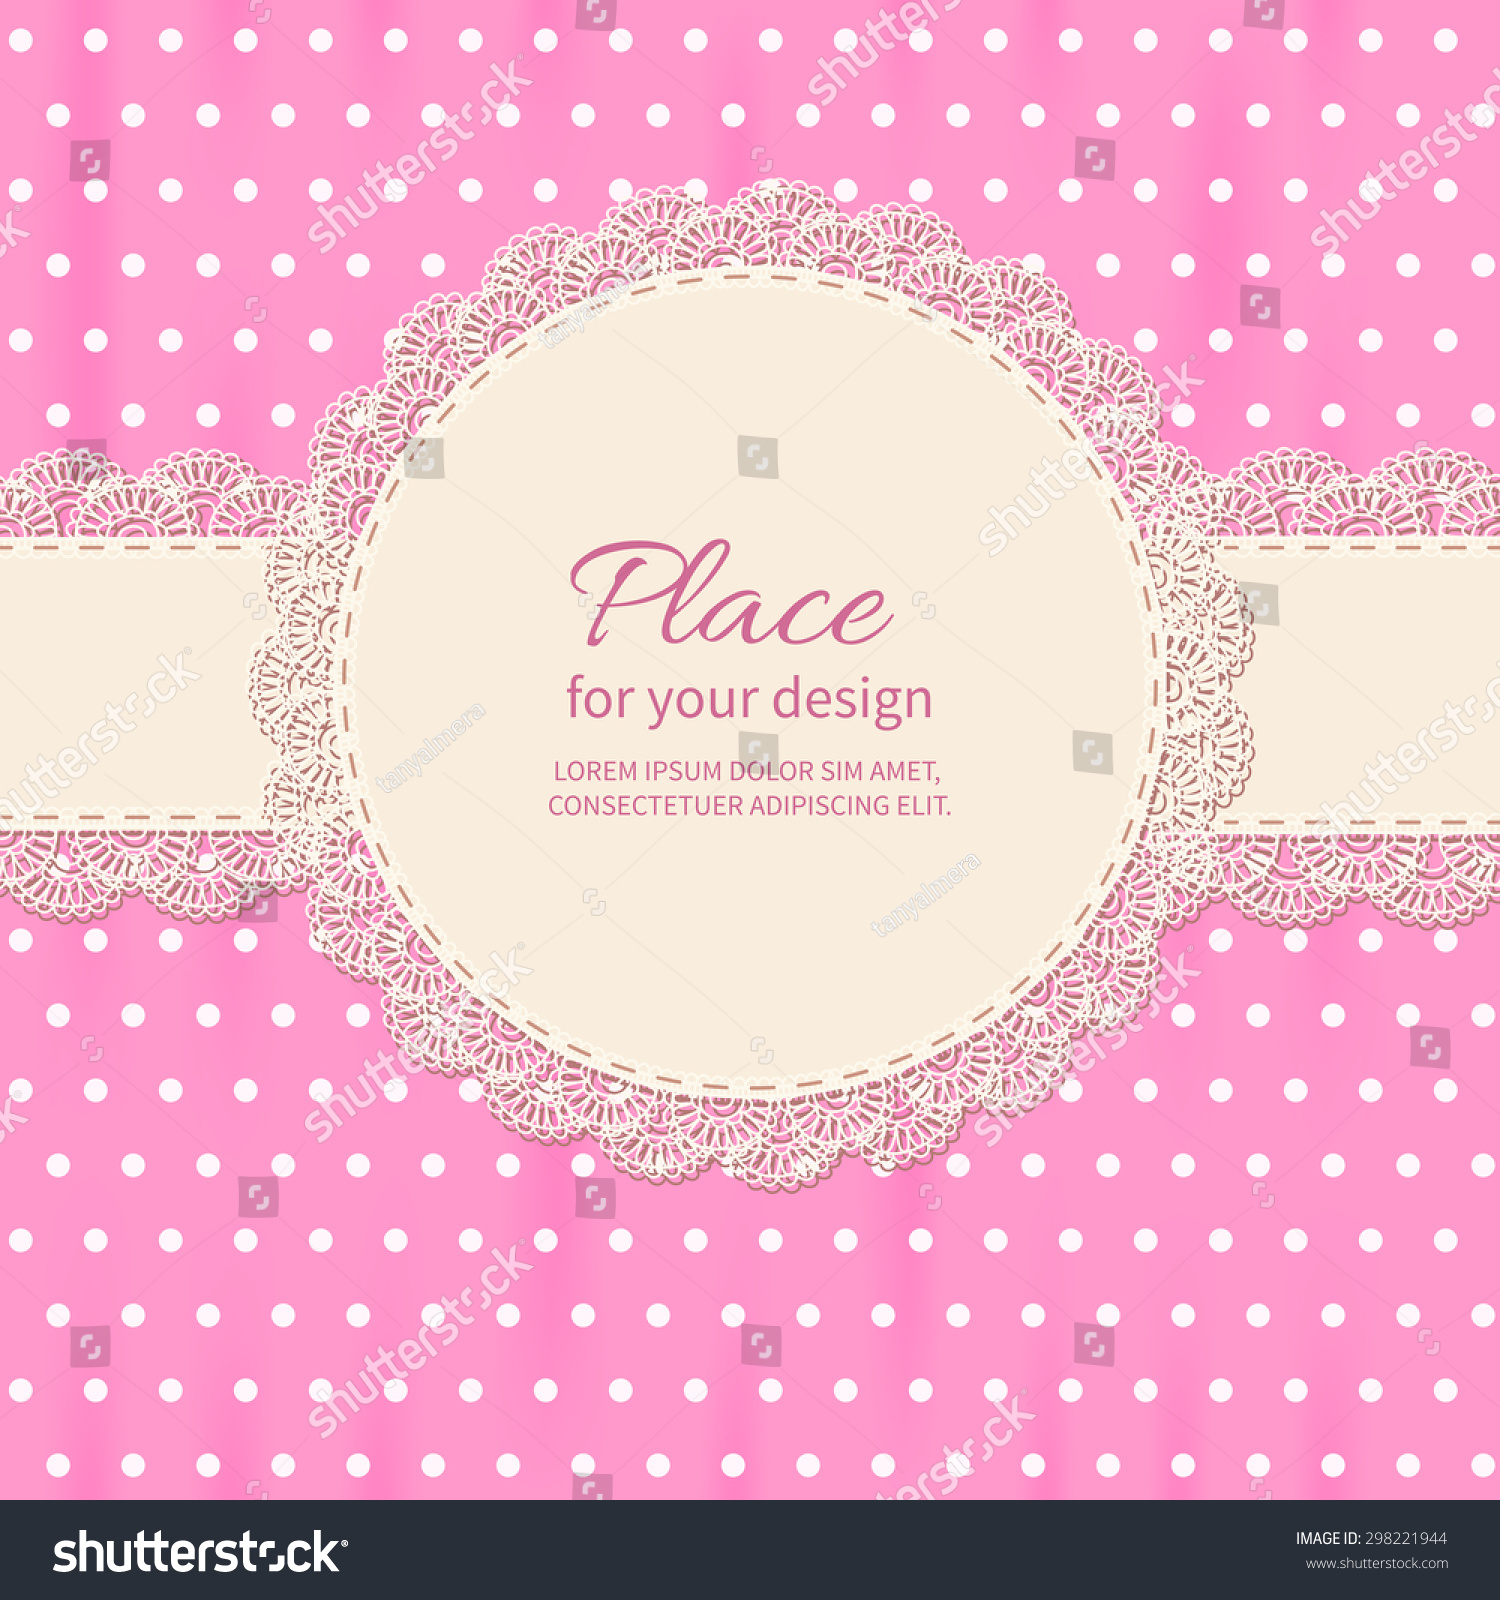 Retro Background With Lace And Polka Dot Wallpaper.Baby Shower Frame.